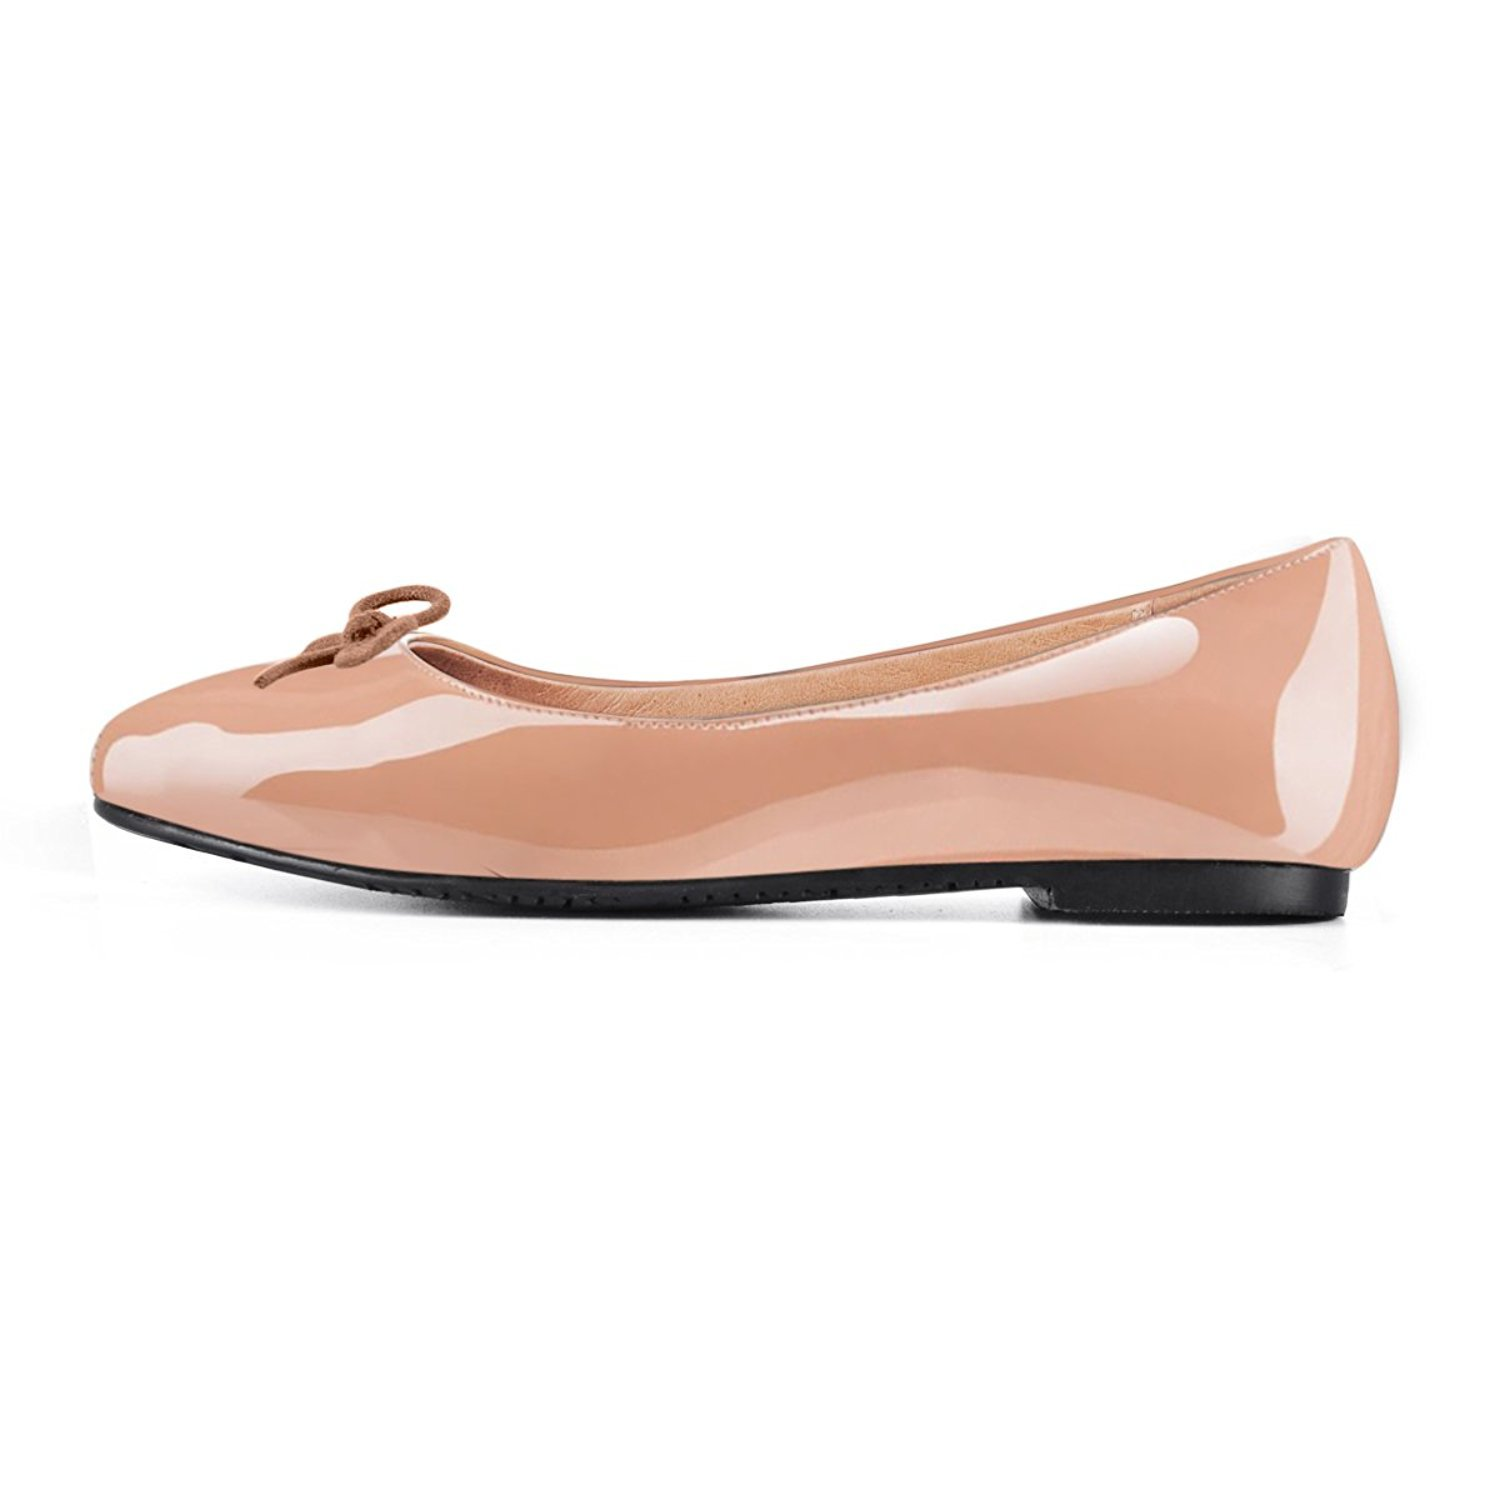 Joogo Women Round Toe Ballet Flats with Bow Tie Slip On Casual Comfortable Shoes B0788FKB96 12 B(M) US|Nude